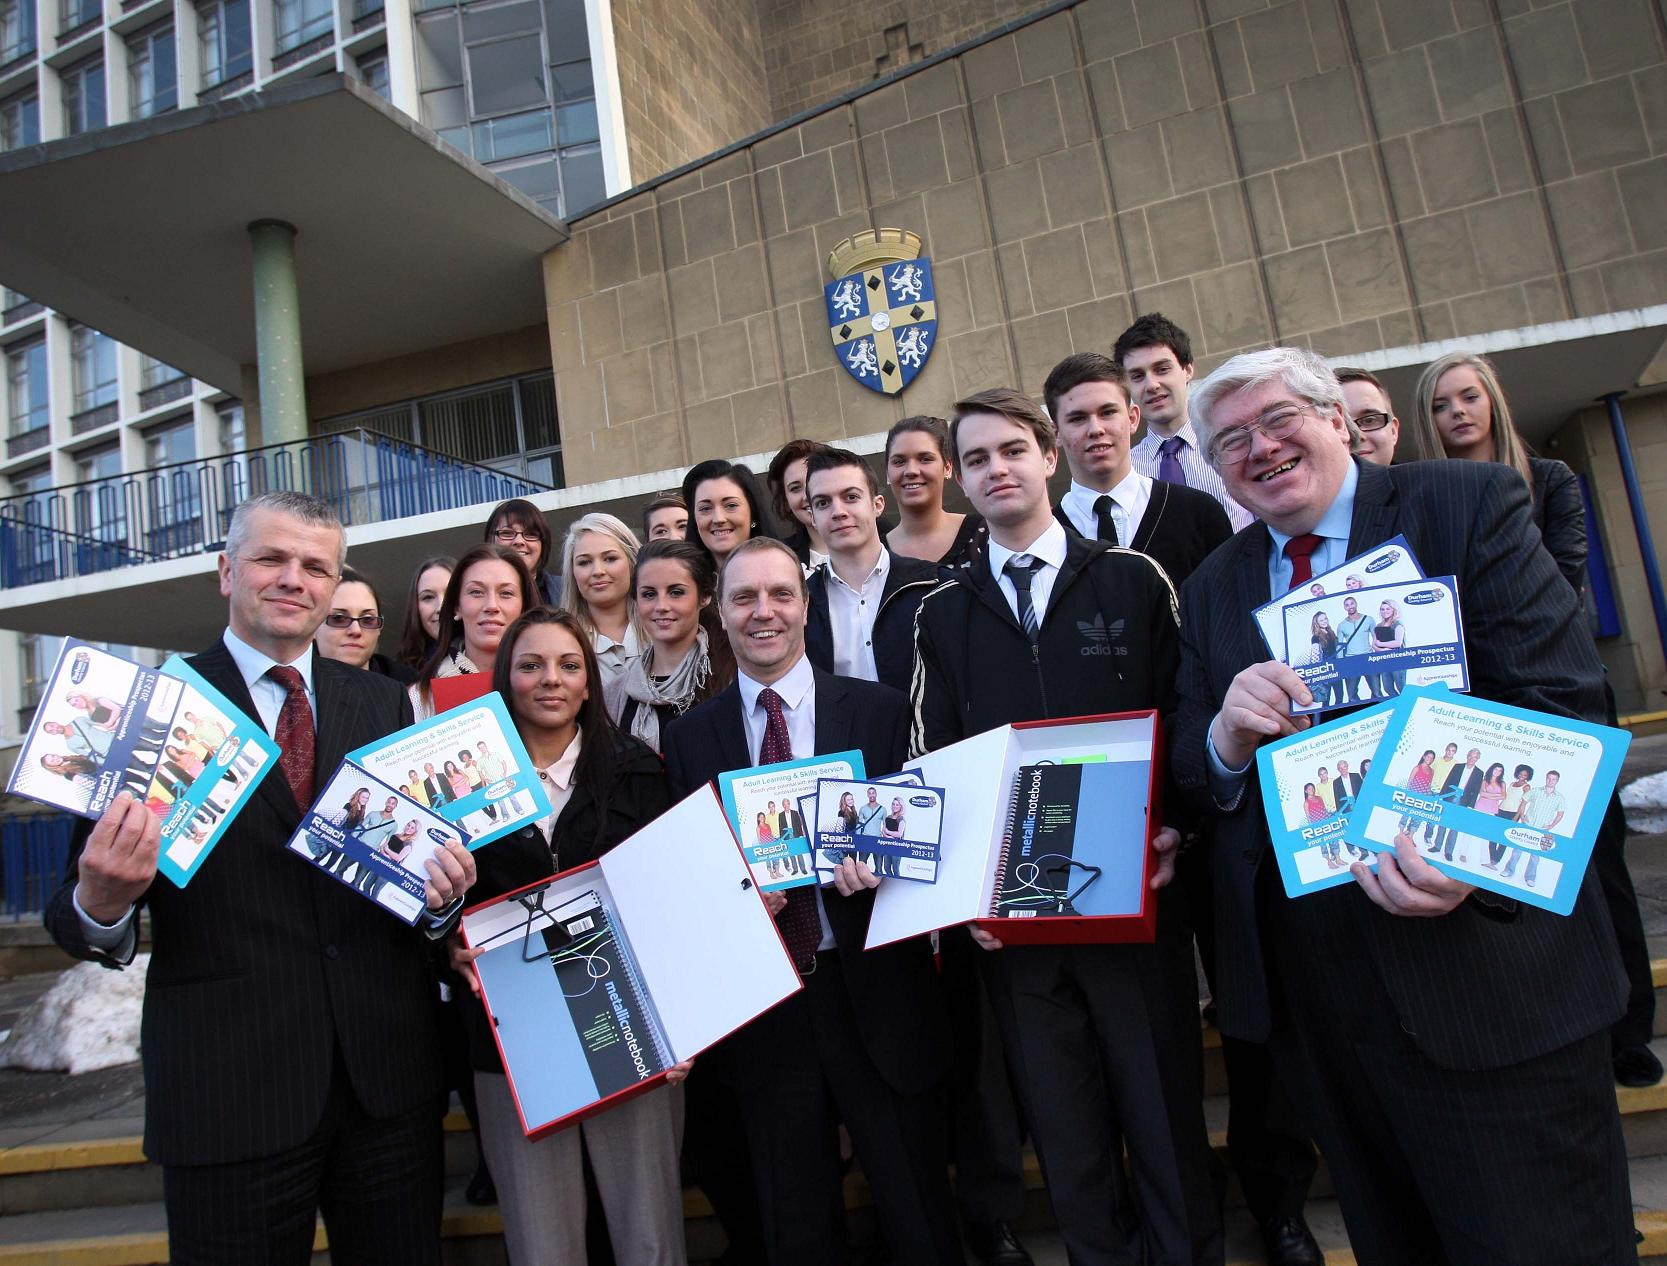 Councillors and officials greet the new apprentices